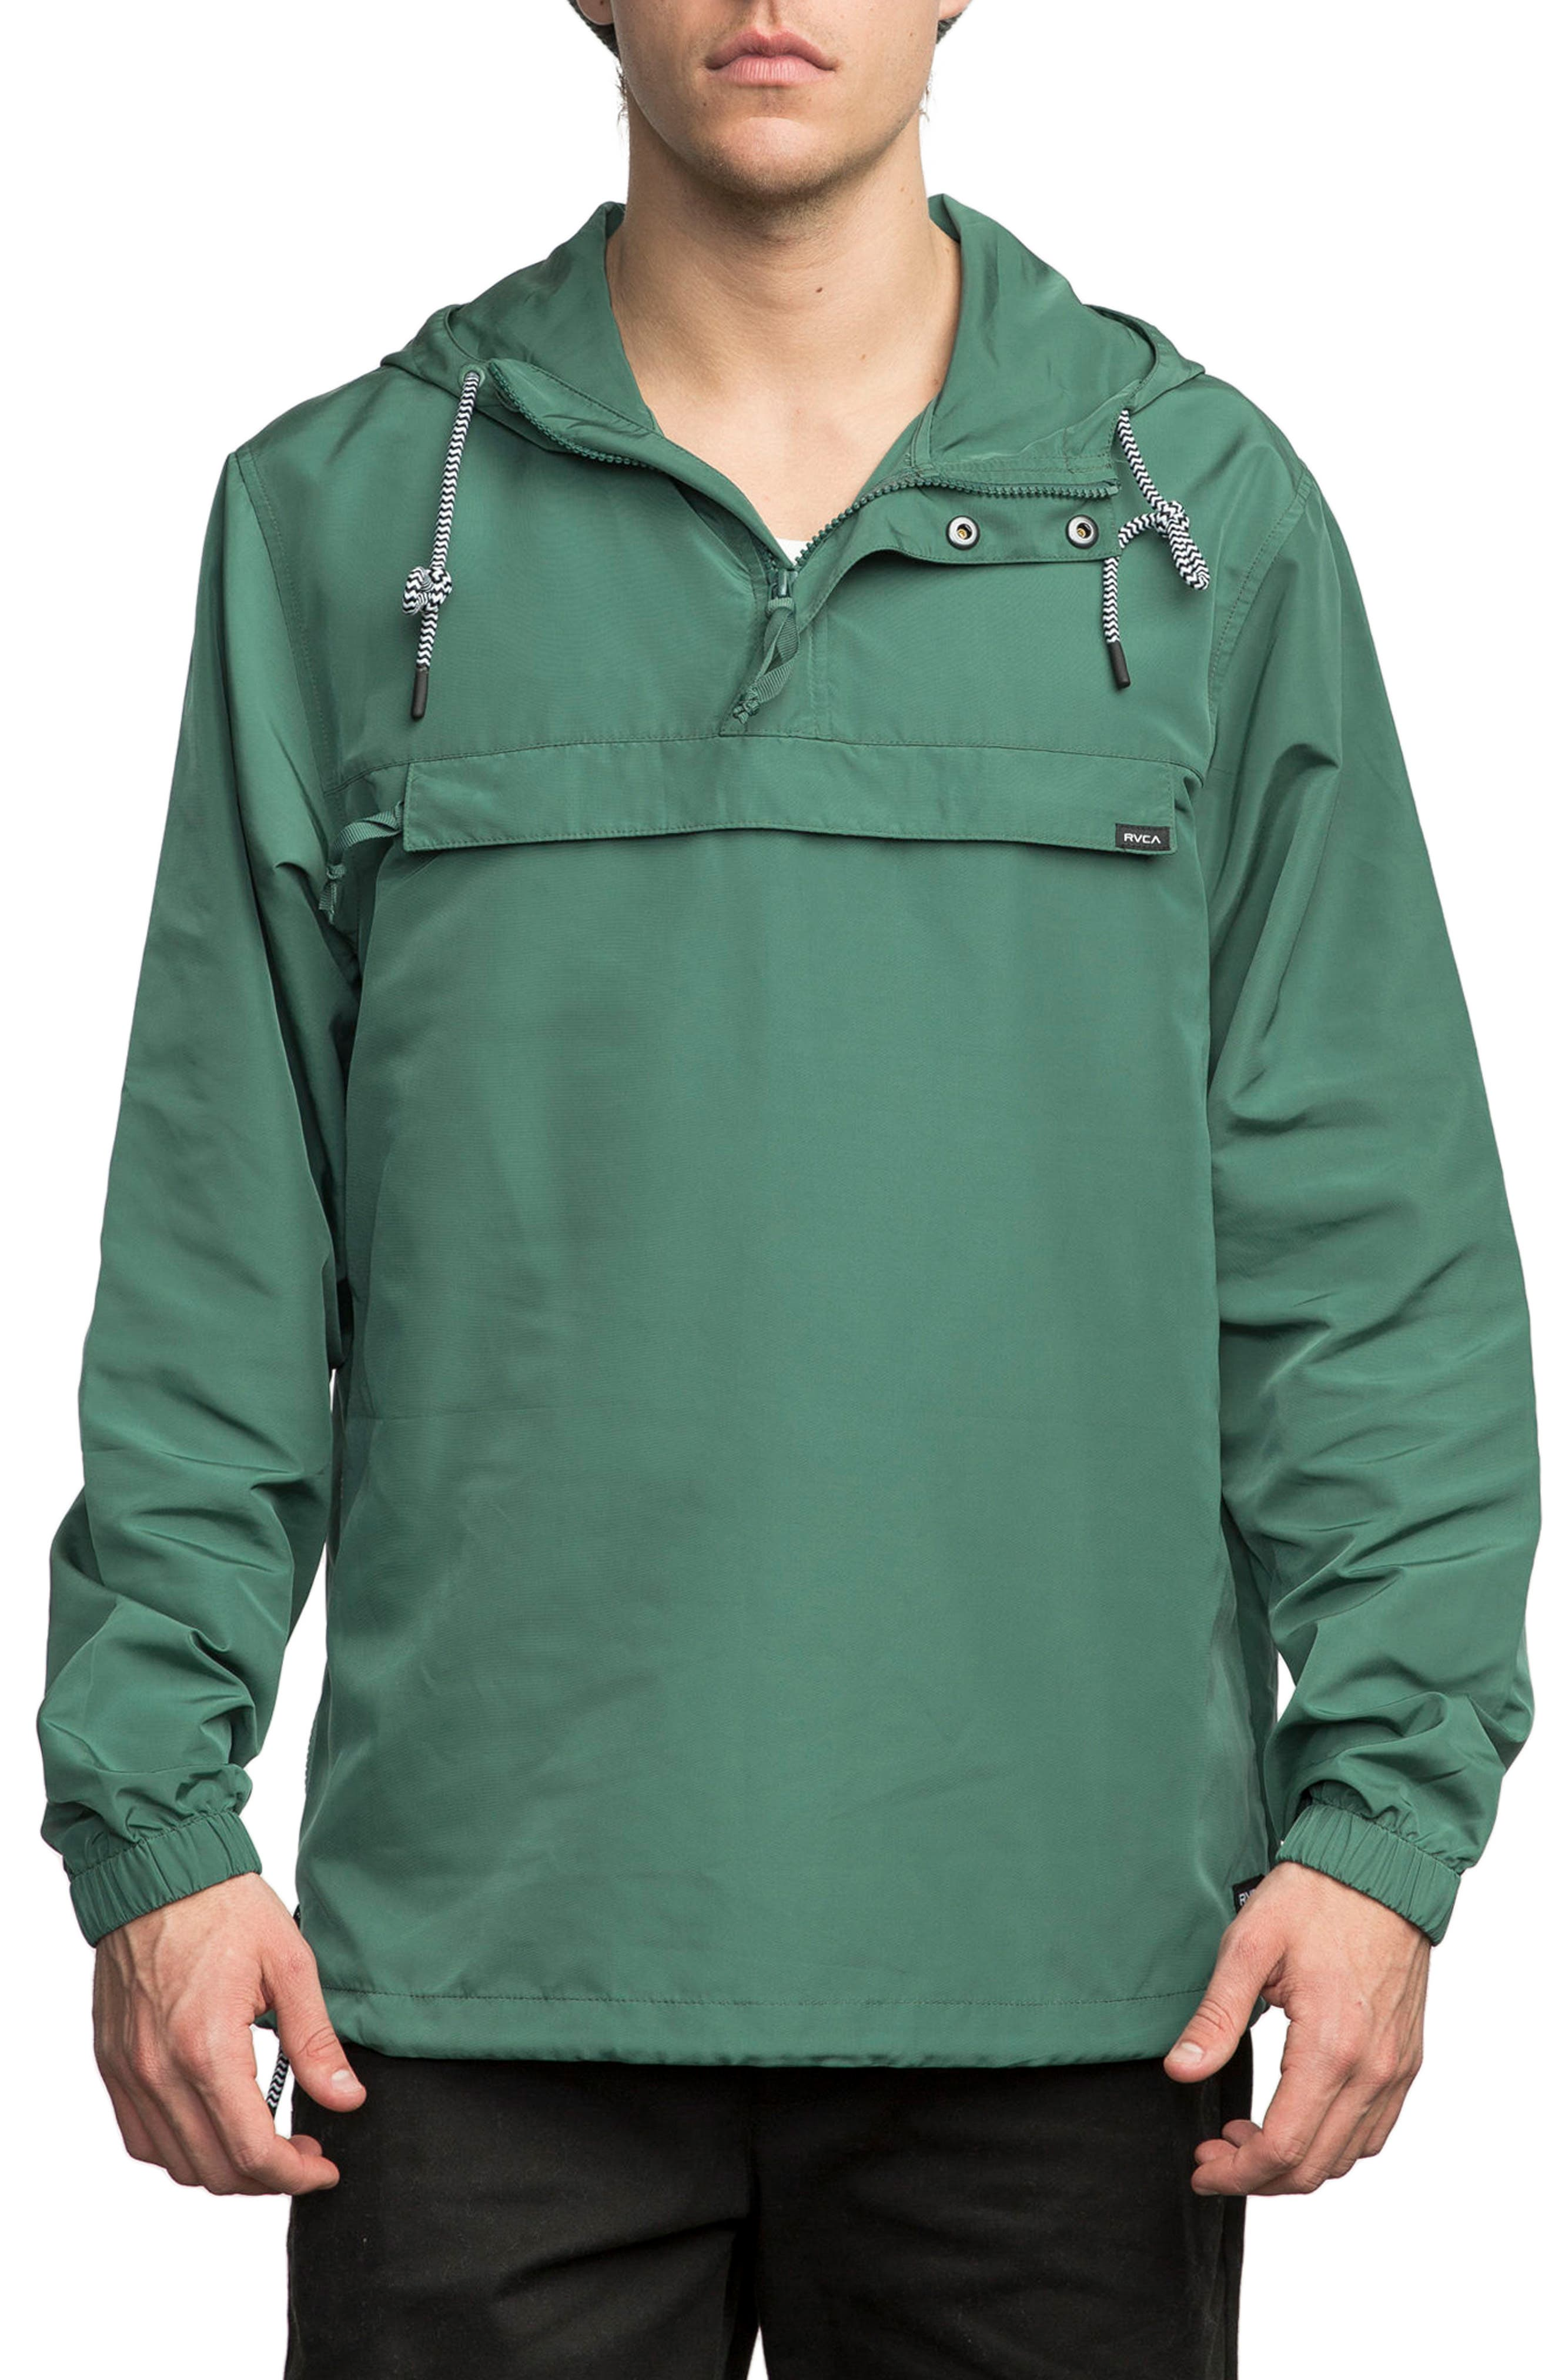 Packaway Hooded Anorak,                             Main thumbnail 2, color,